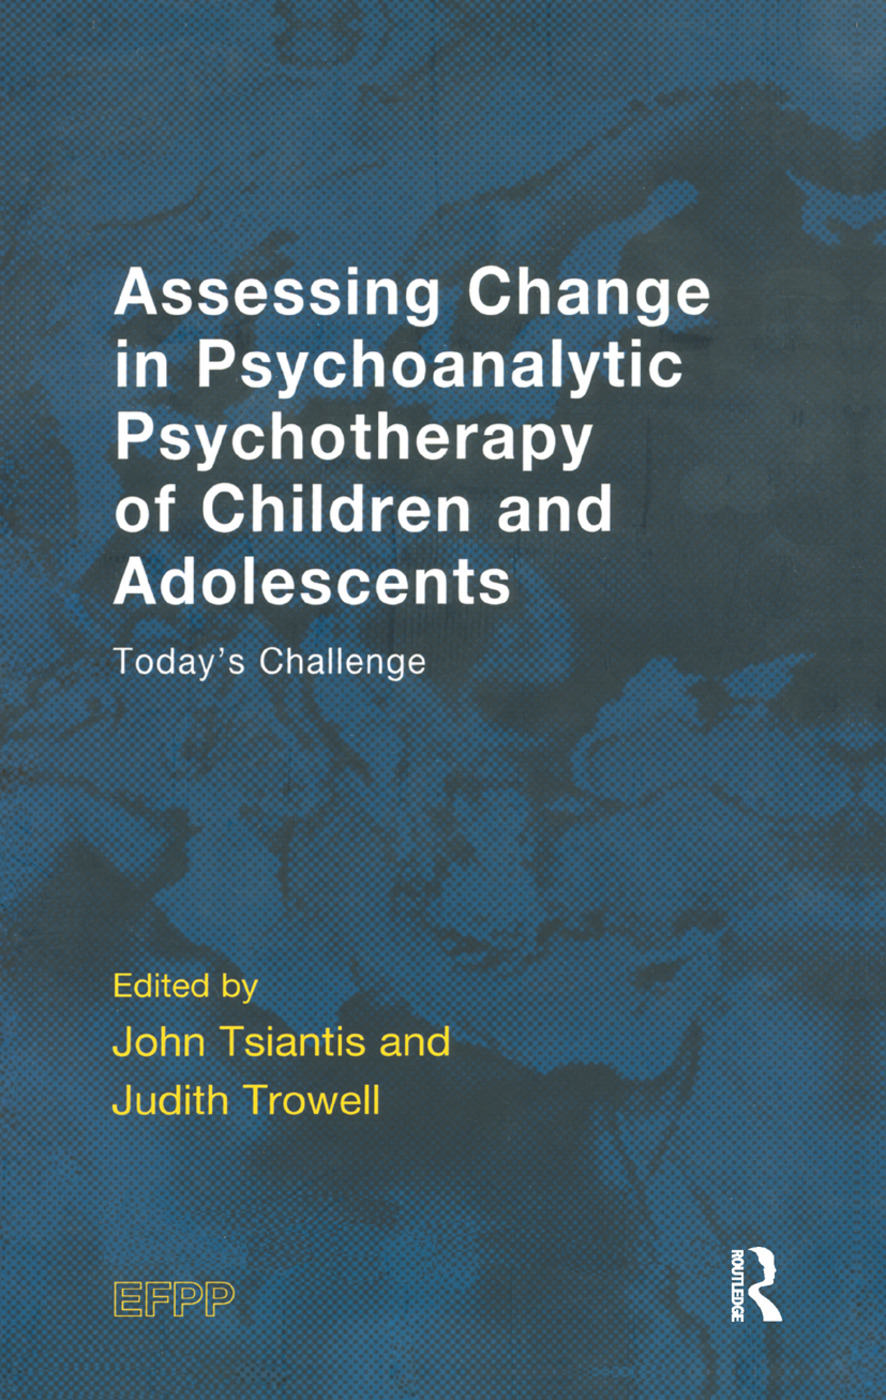 Research on therapeutic processes: In psychodynamic psychotherapy with children and adolescents